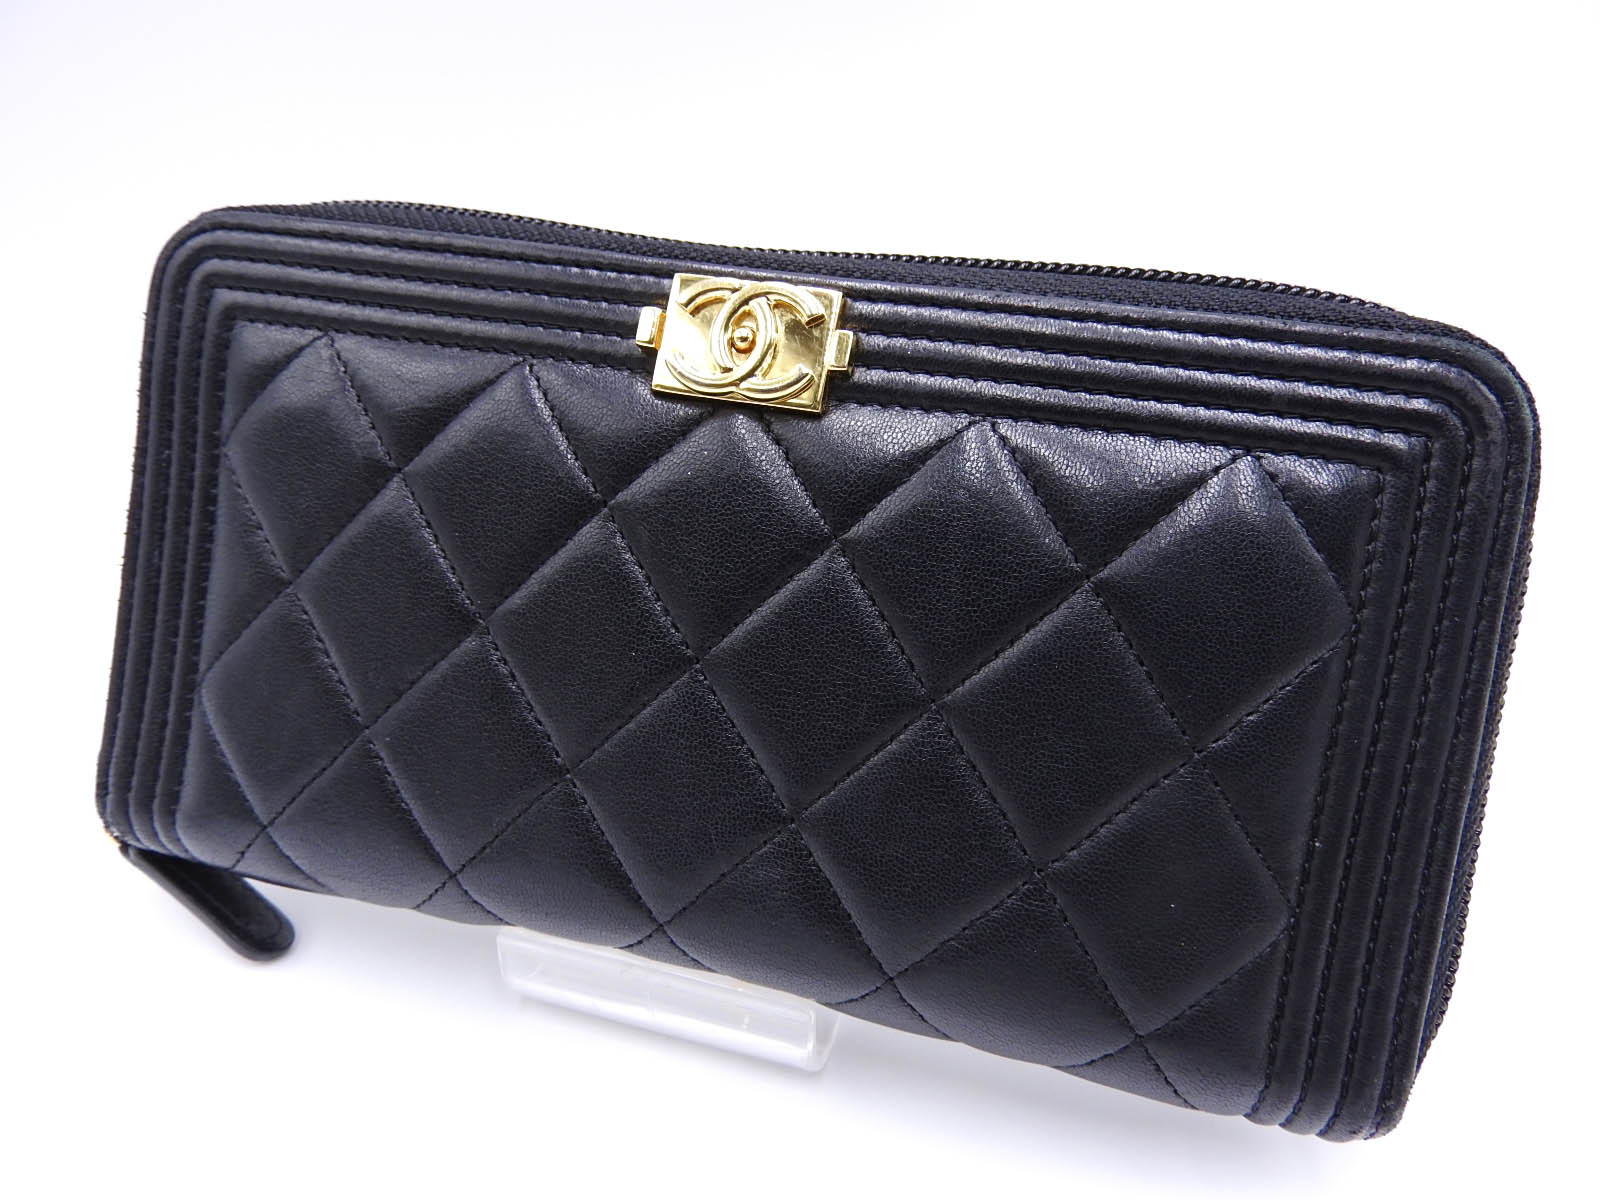 4ece6b3100 Details about Auth CHANEL Boy Chanel Zip Around Long Wallet Lambskin Black  Gold A80288 A-9372